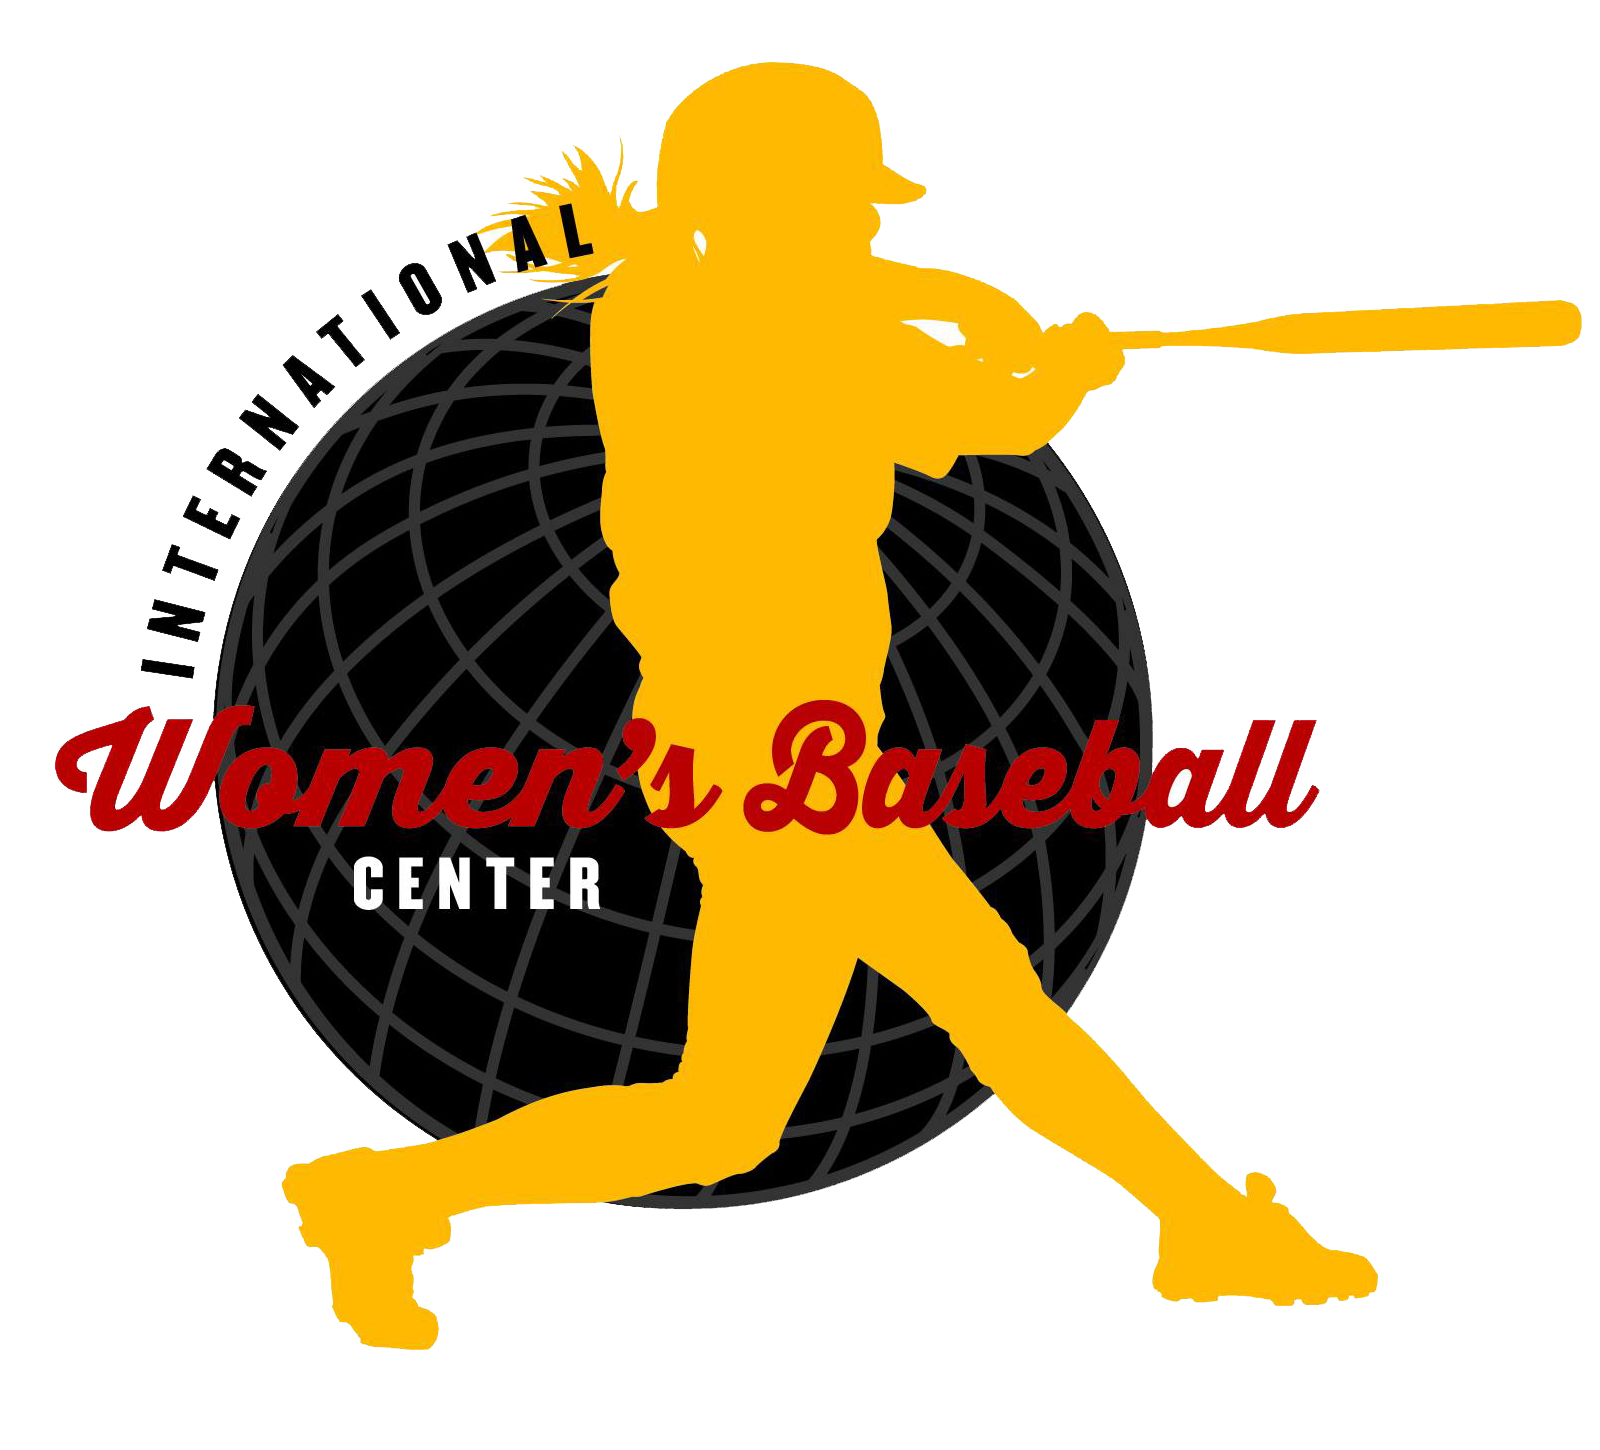 International Women's Baseball Center